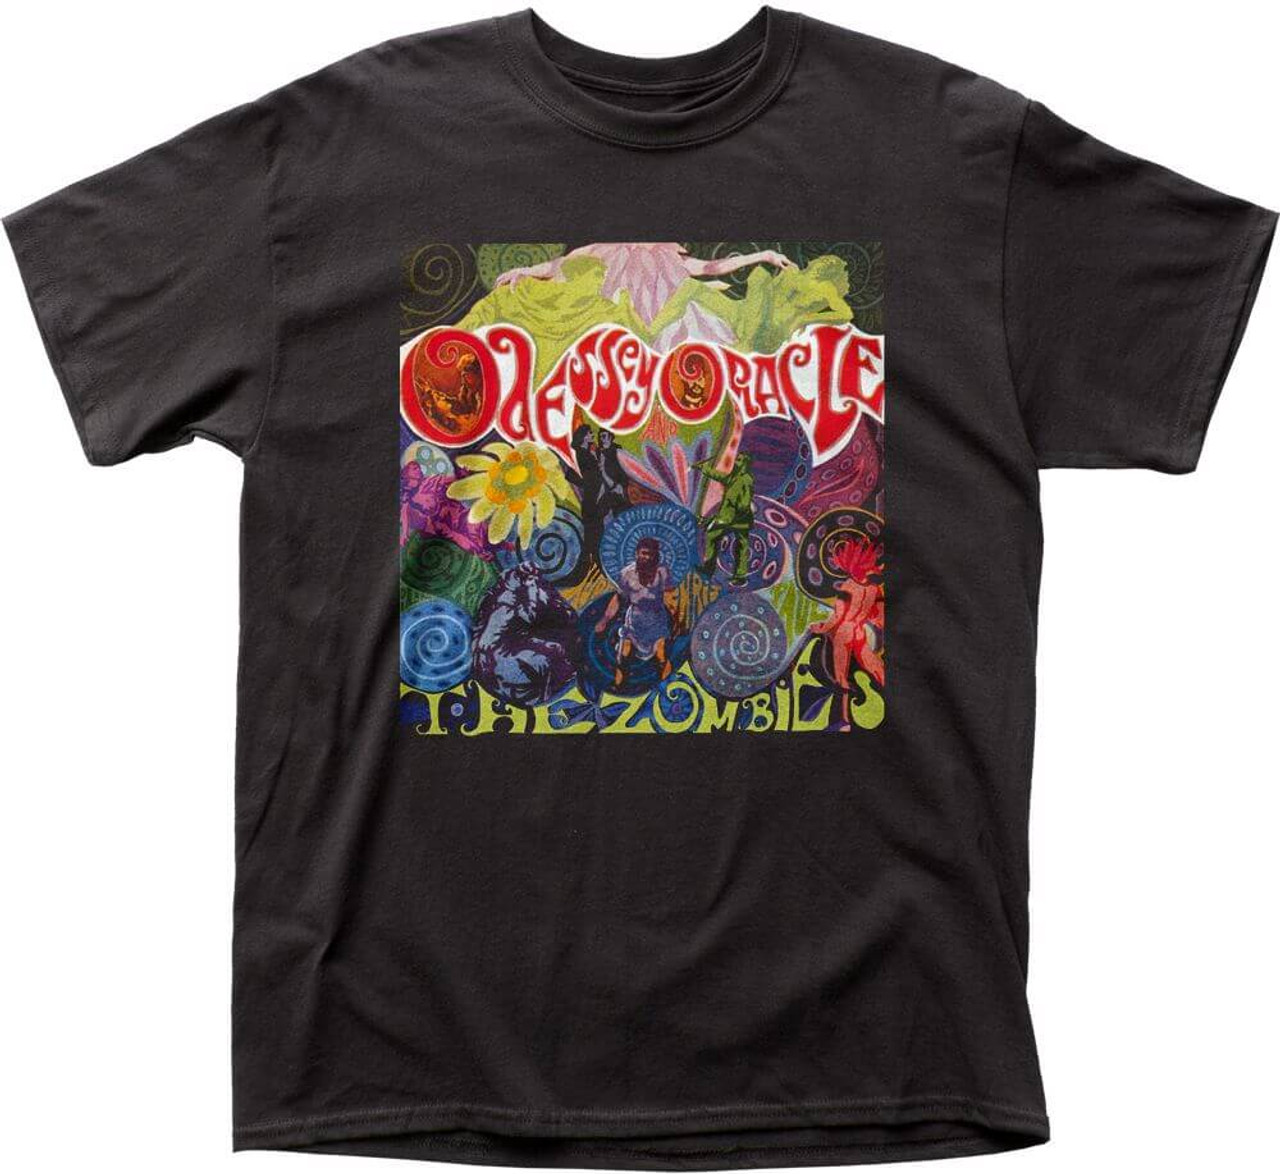 040321475c8 The Cure Band Womens T Shirt « Alzheimer's Network of Oregon